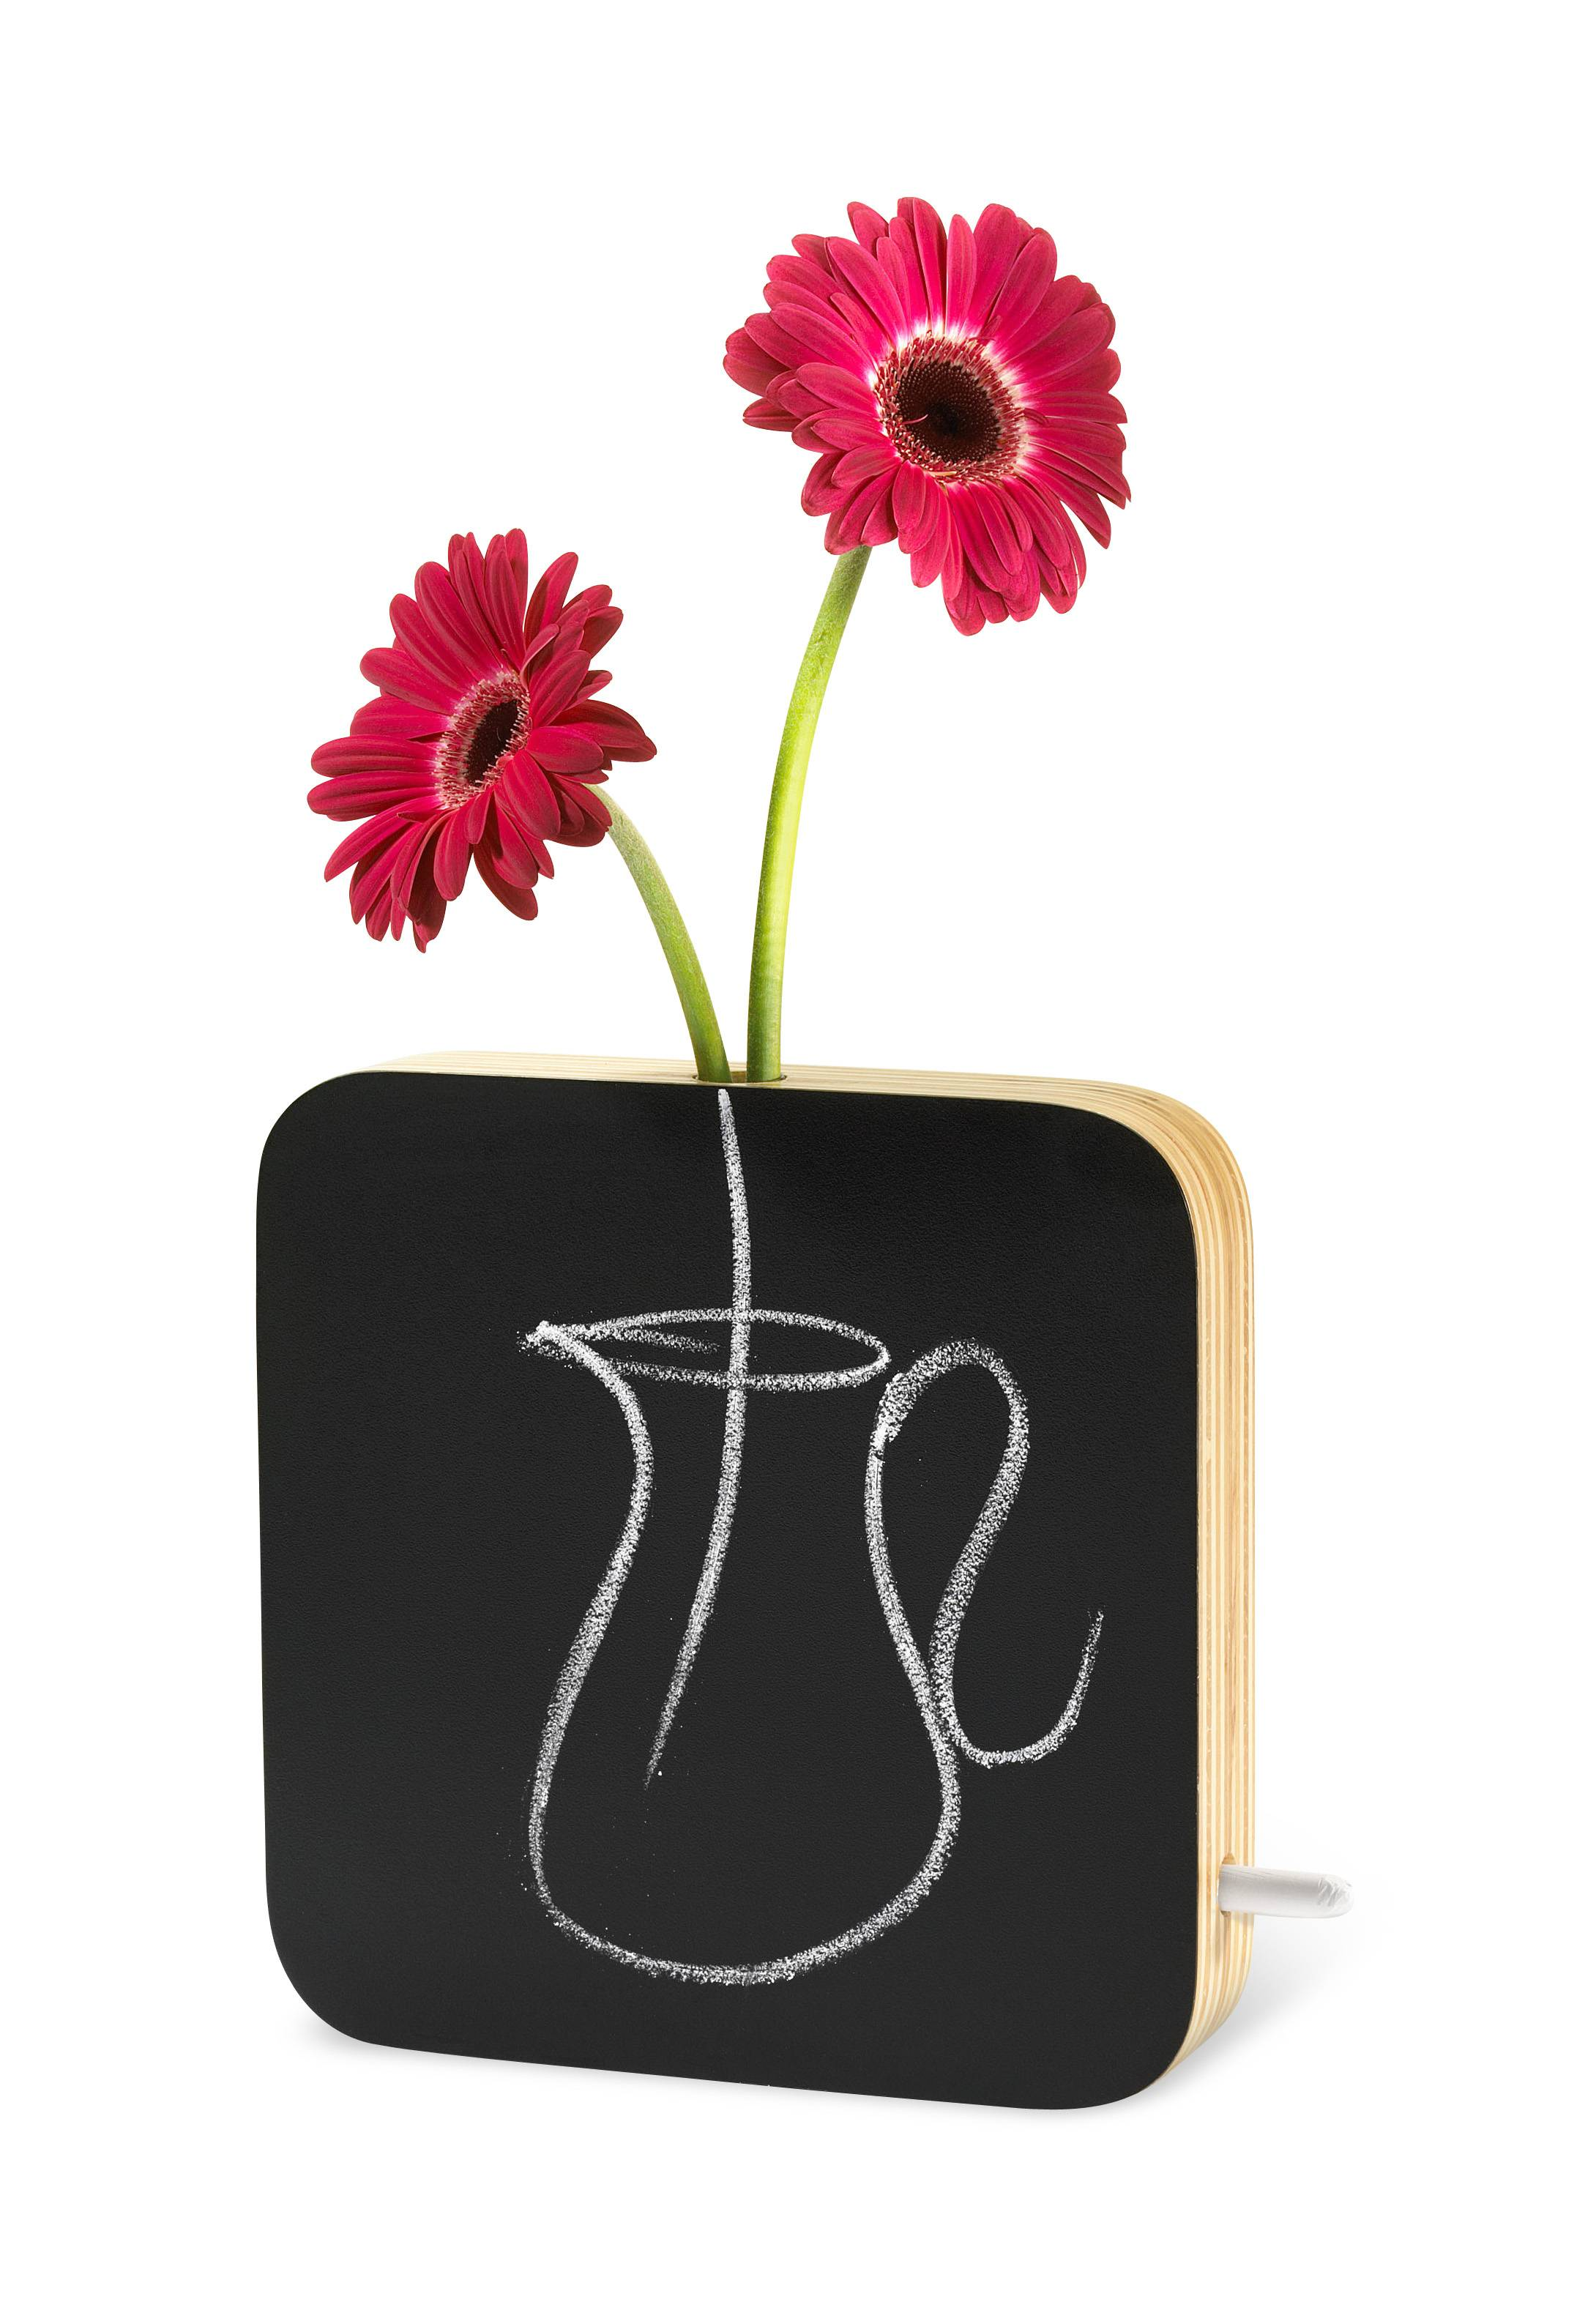 A playful Chalkboard Vase by designer Ricardo Saint-Clair is available at momastore.org, featuring a chalkboard front which can be used for drawings, messages, and more. The top of the bud vase houses a removable glass tube designed to hold water and flowers.